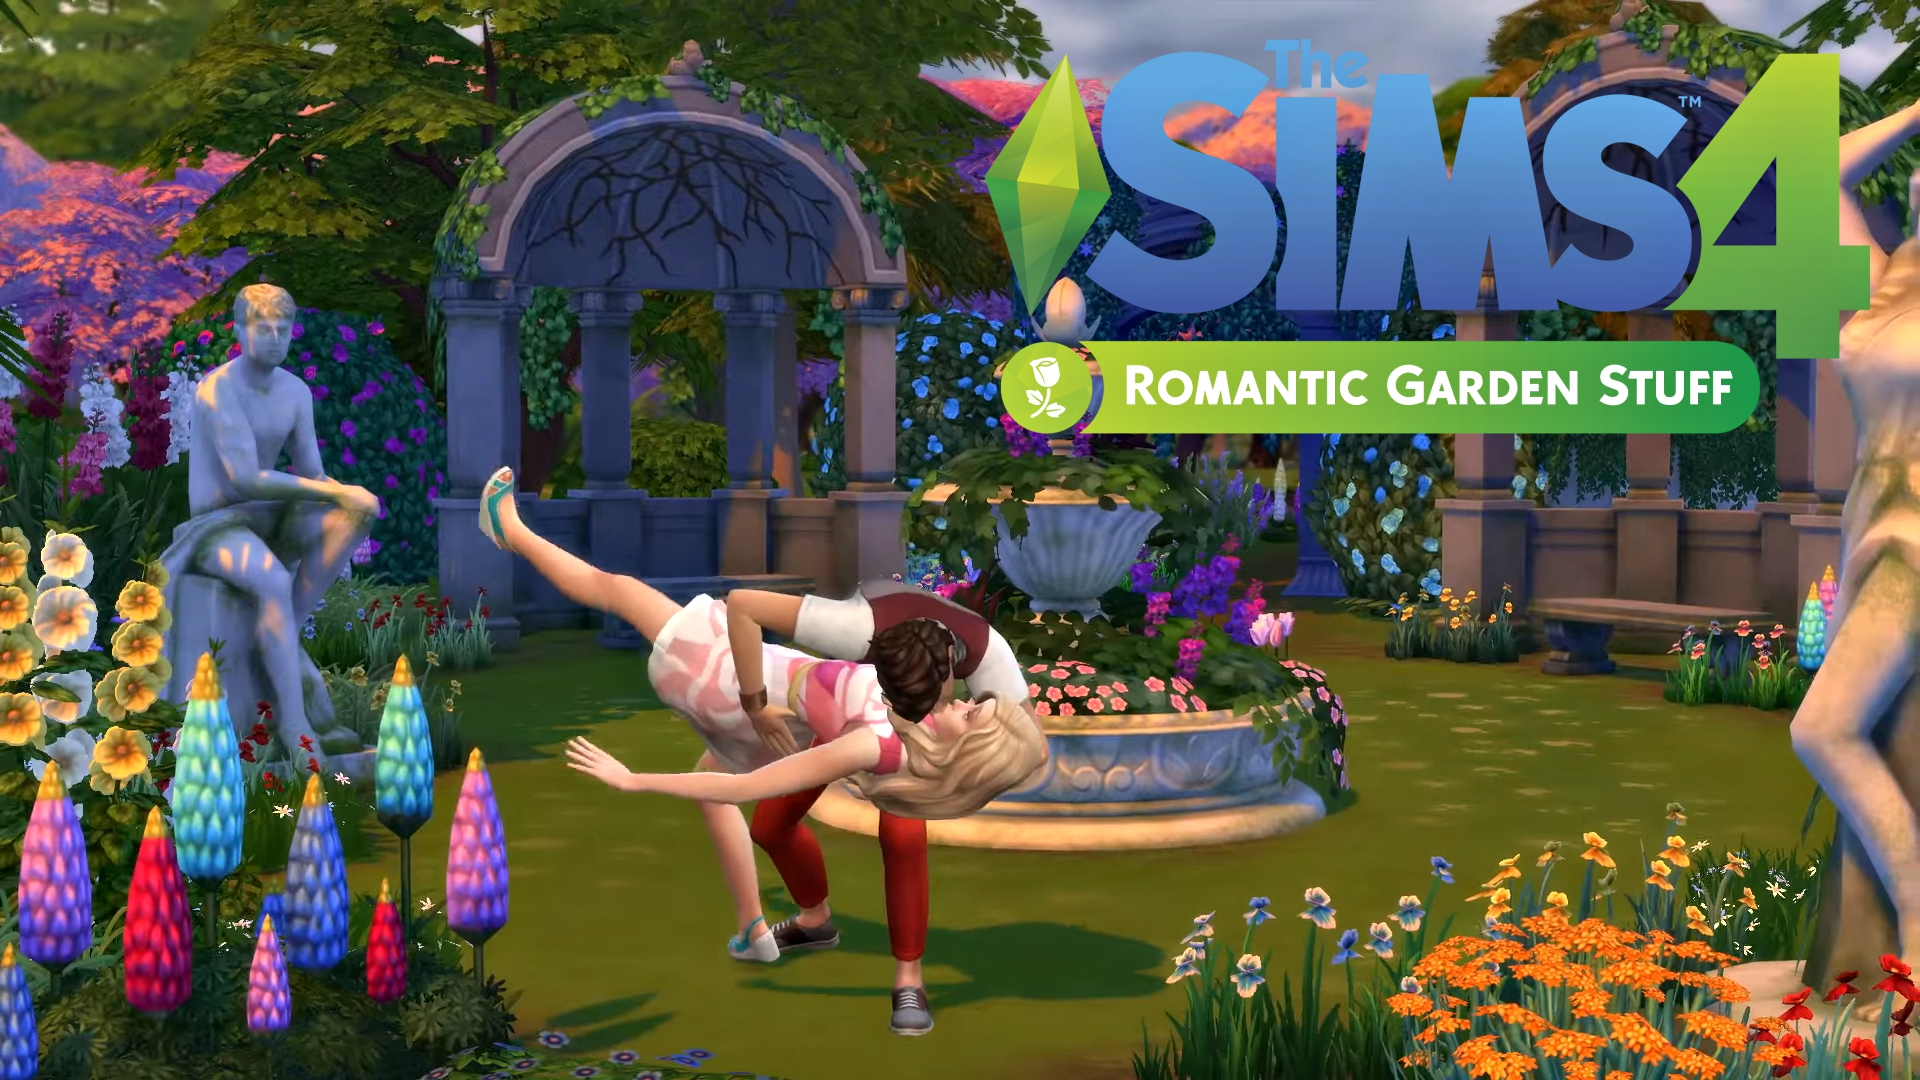 sims 4 free download for windows 10